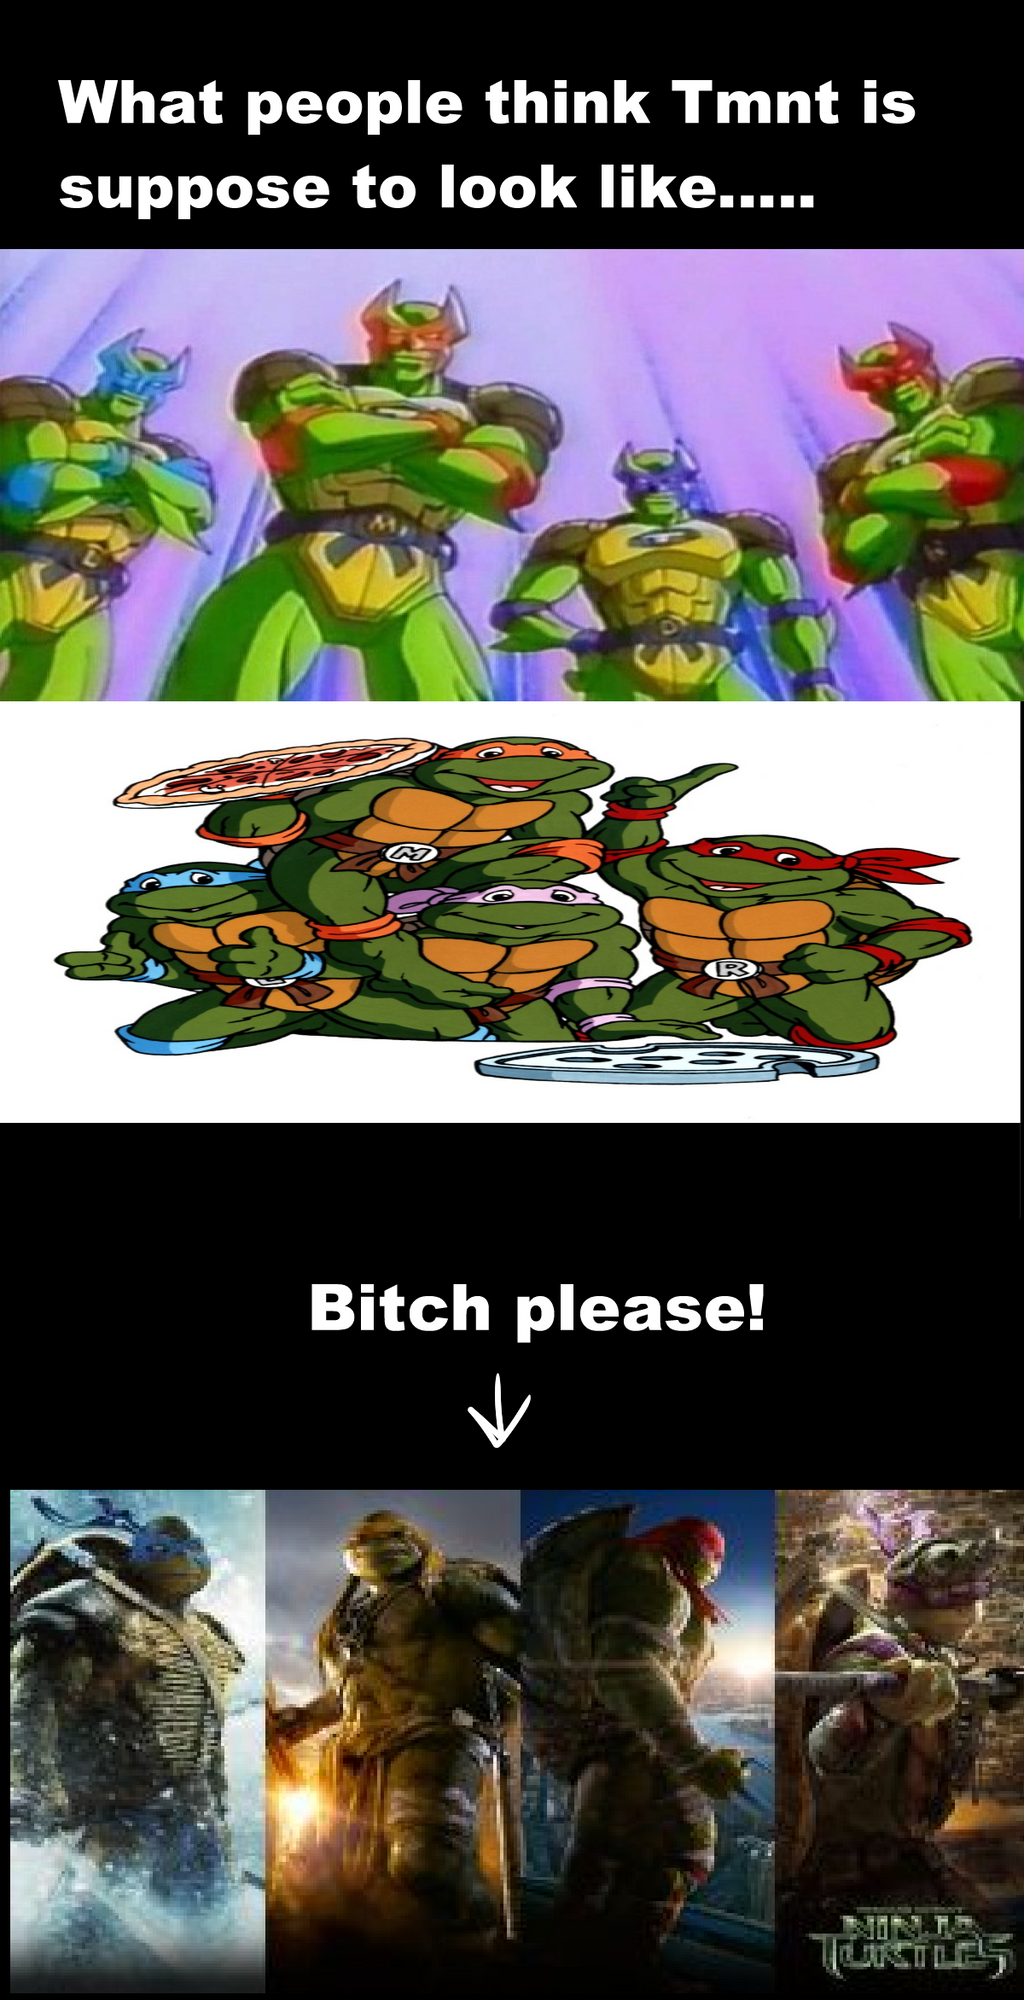 TMNT- what they SHOULD look like 0 by Thesimpleartist4